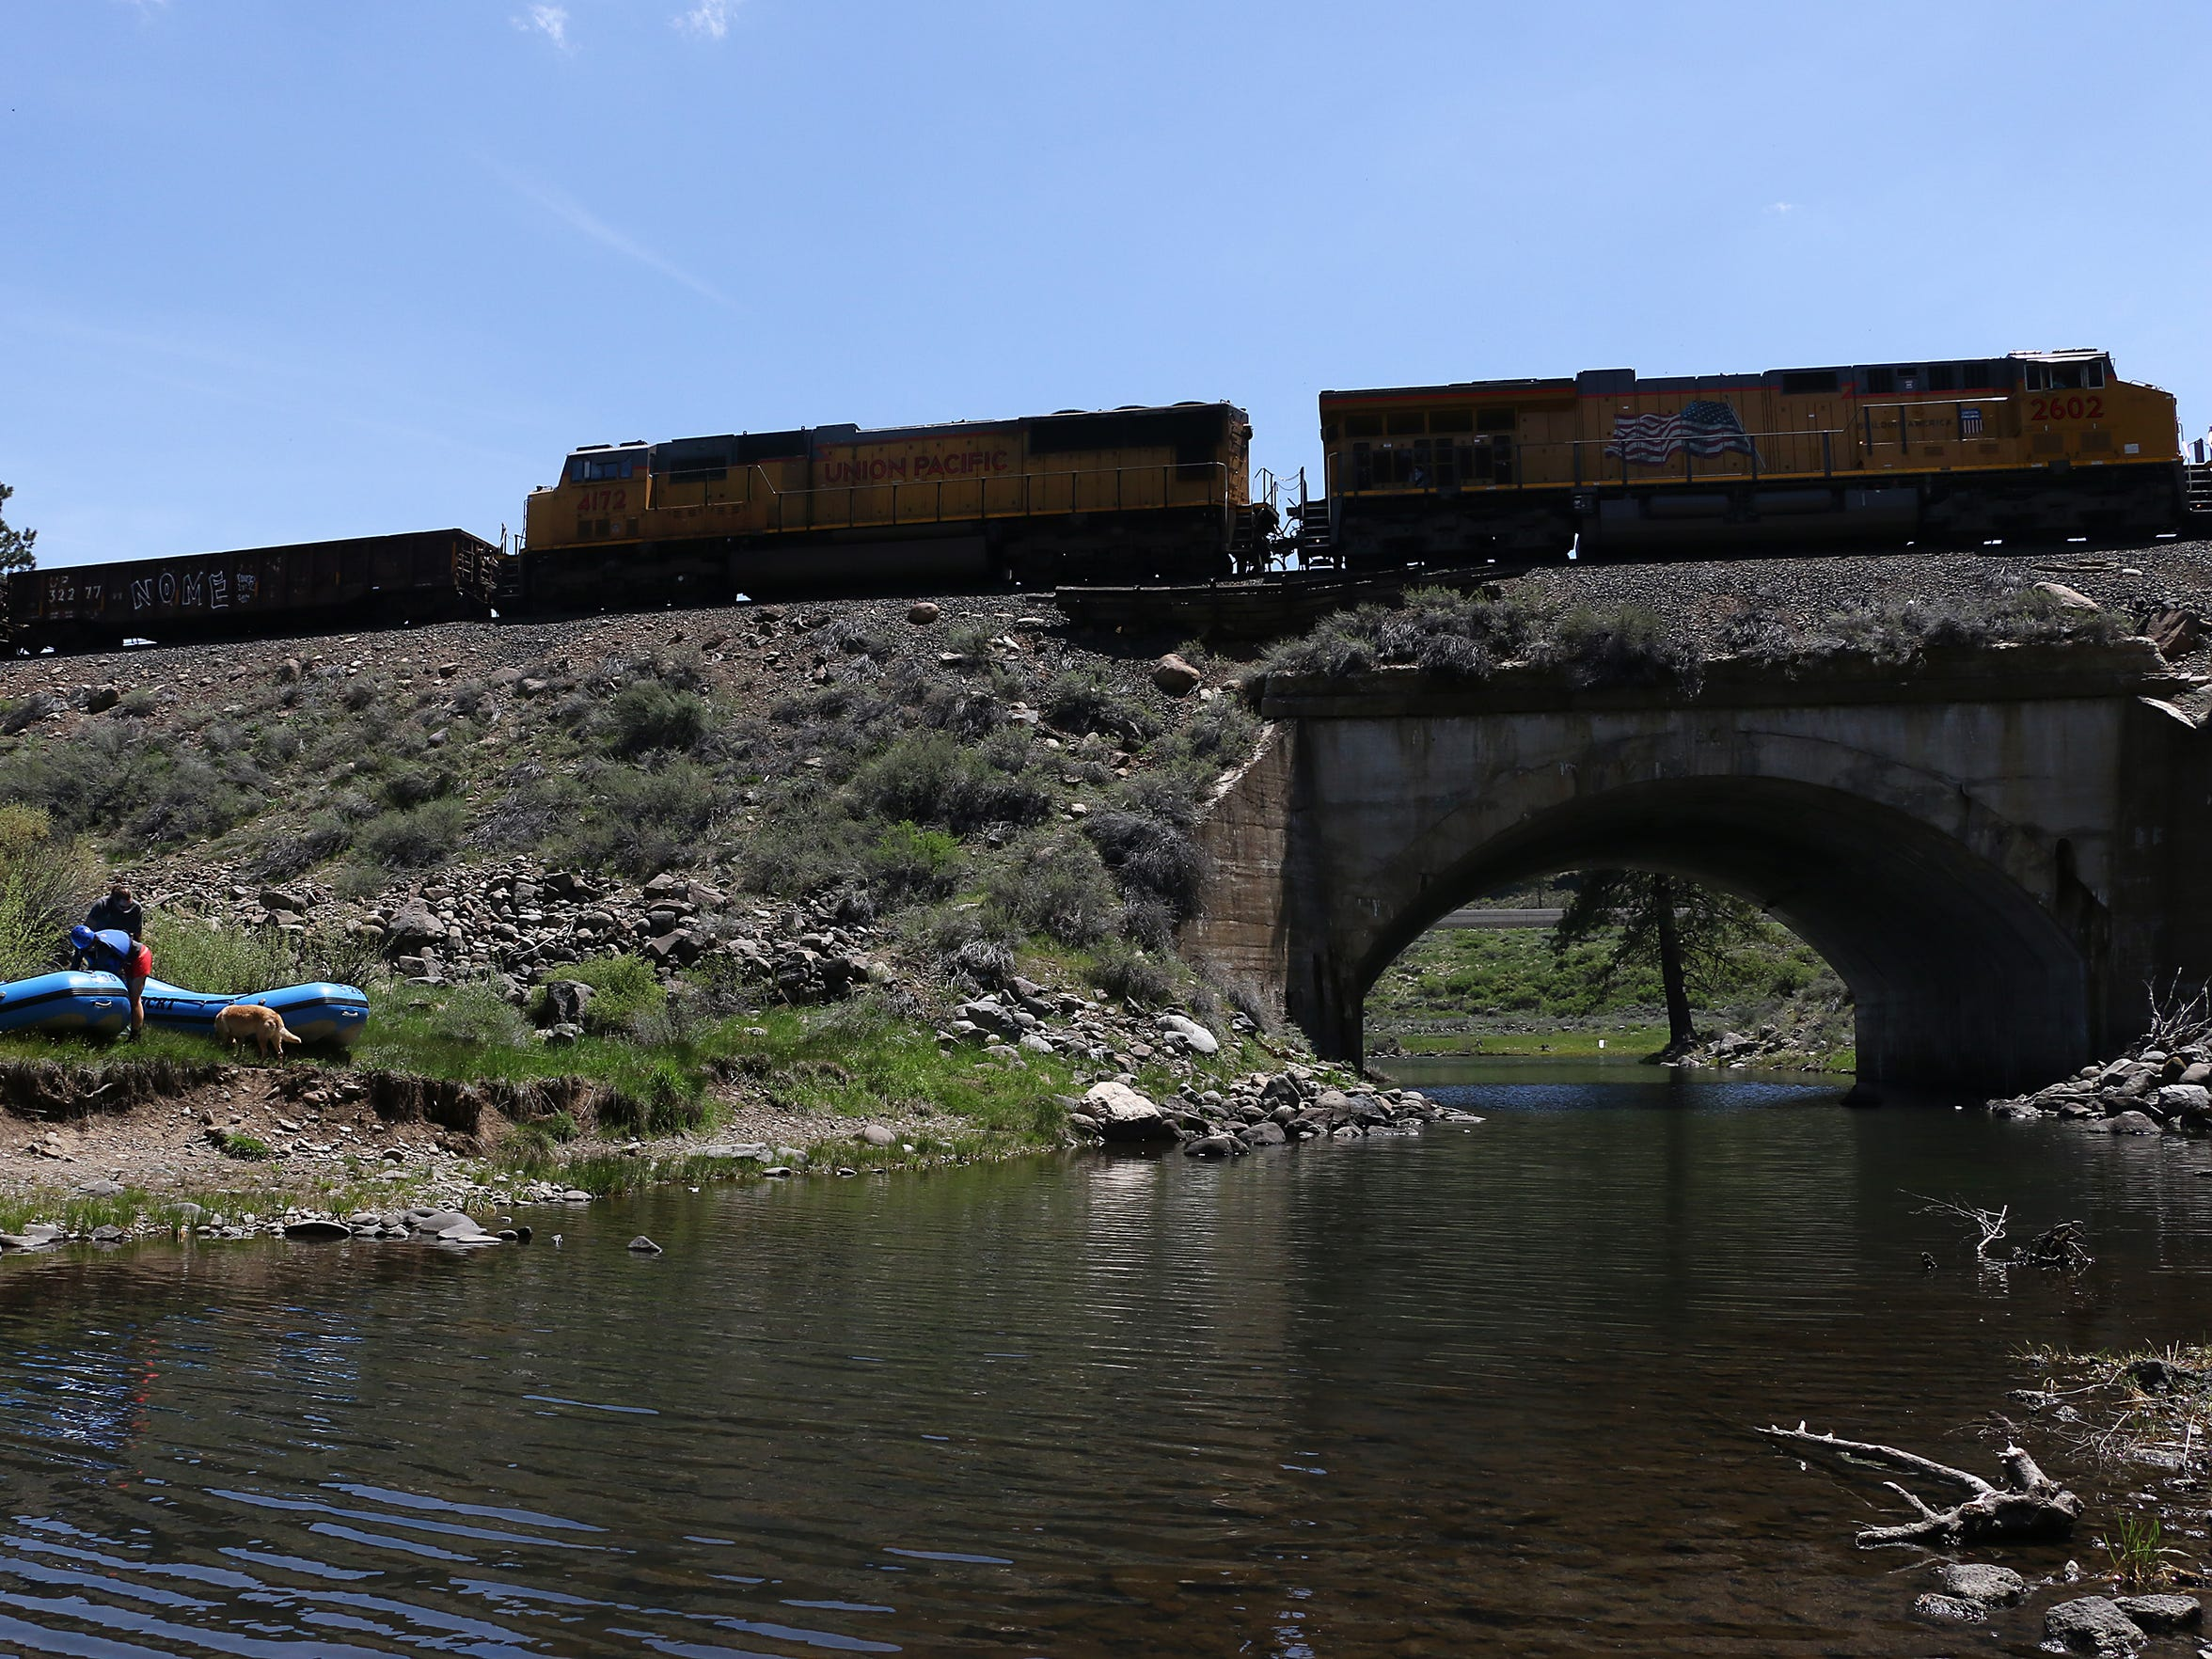 Railroad tracks parallel the Truckee River. RGJ reporters Ben Spillman and Jason Bean paddle the Truckee River from Truckee to Pyramid Lake during May of 2016.